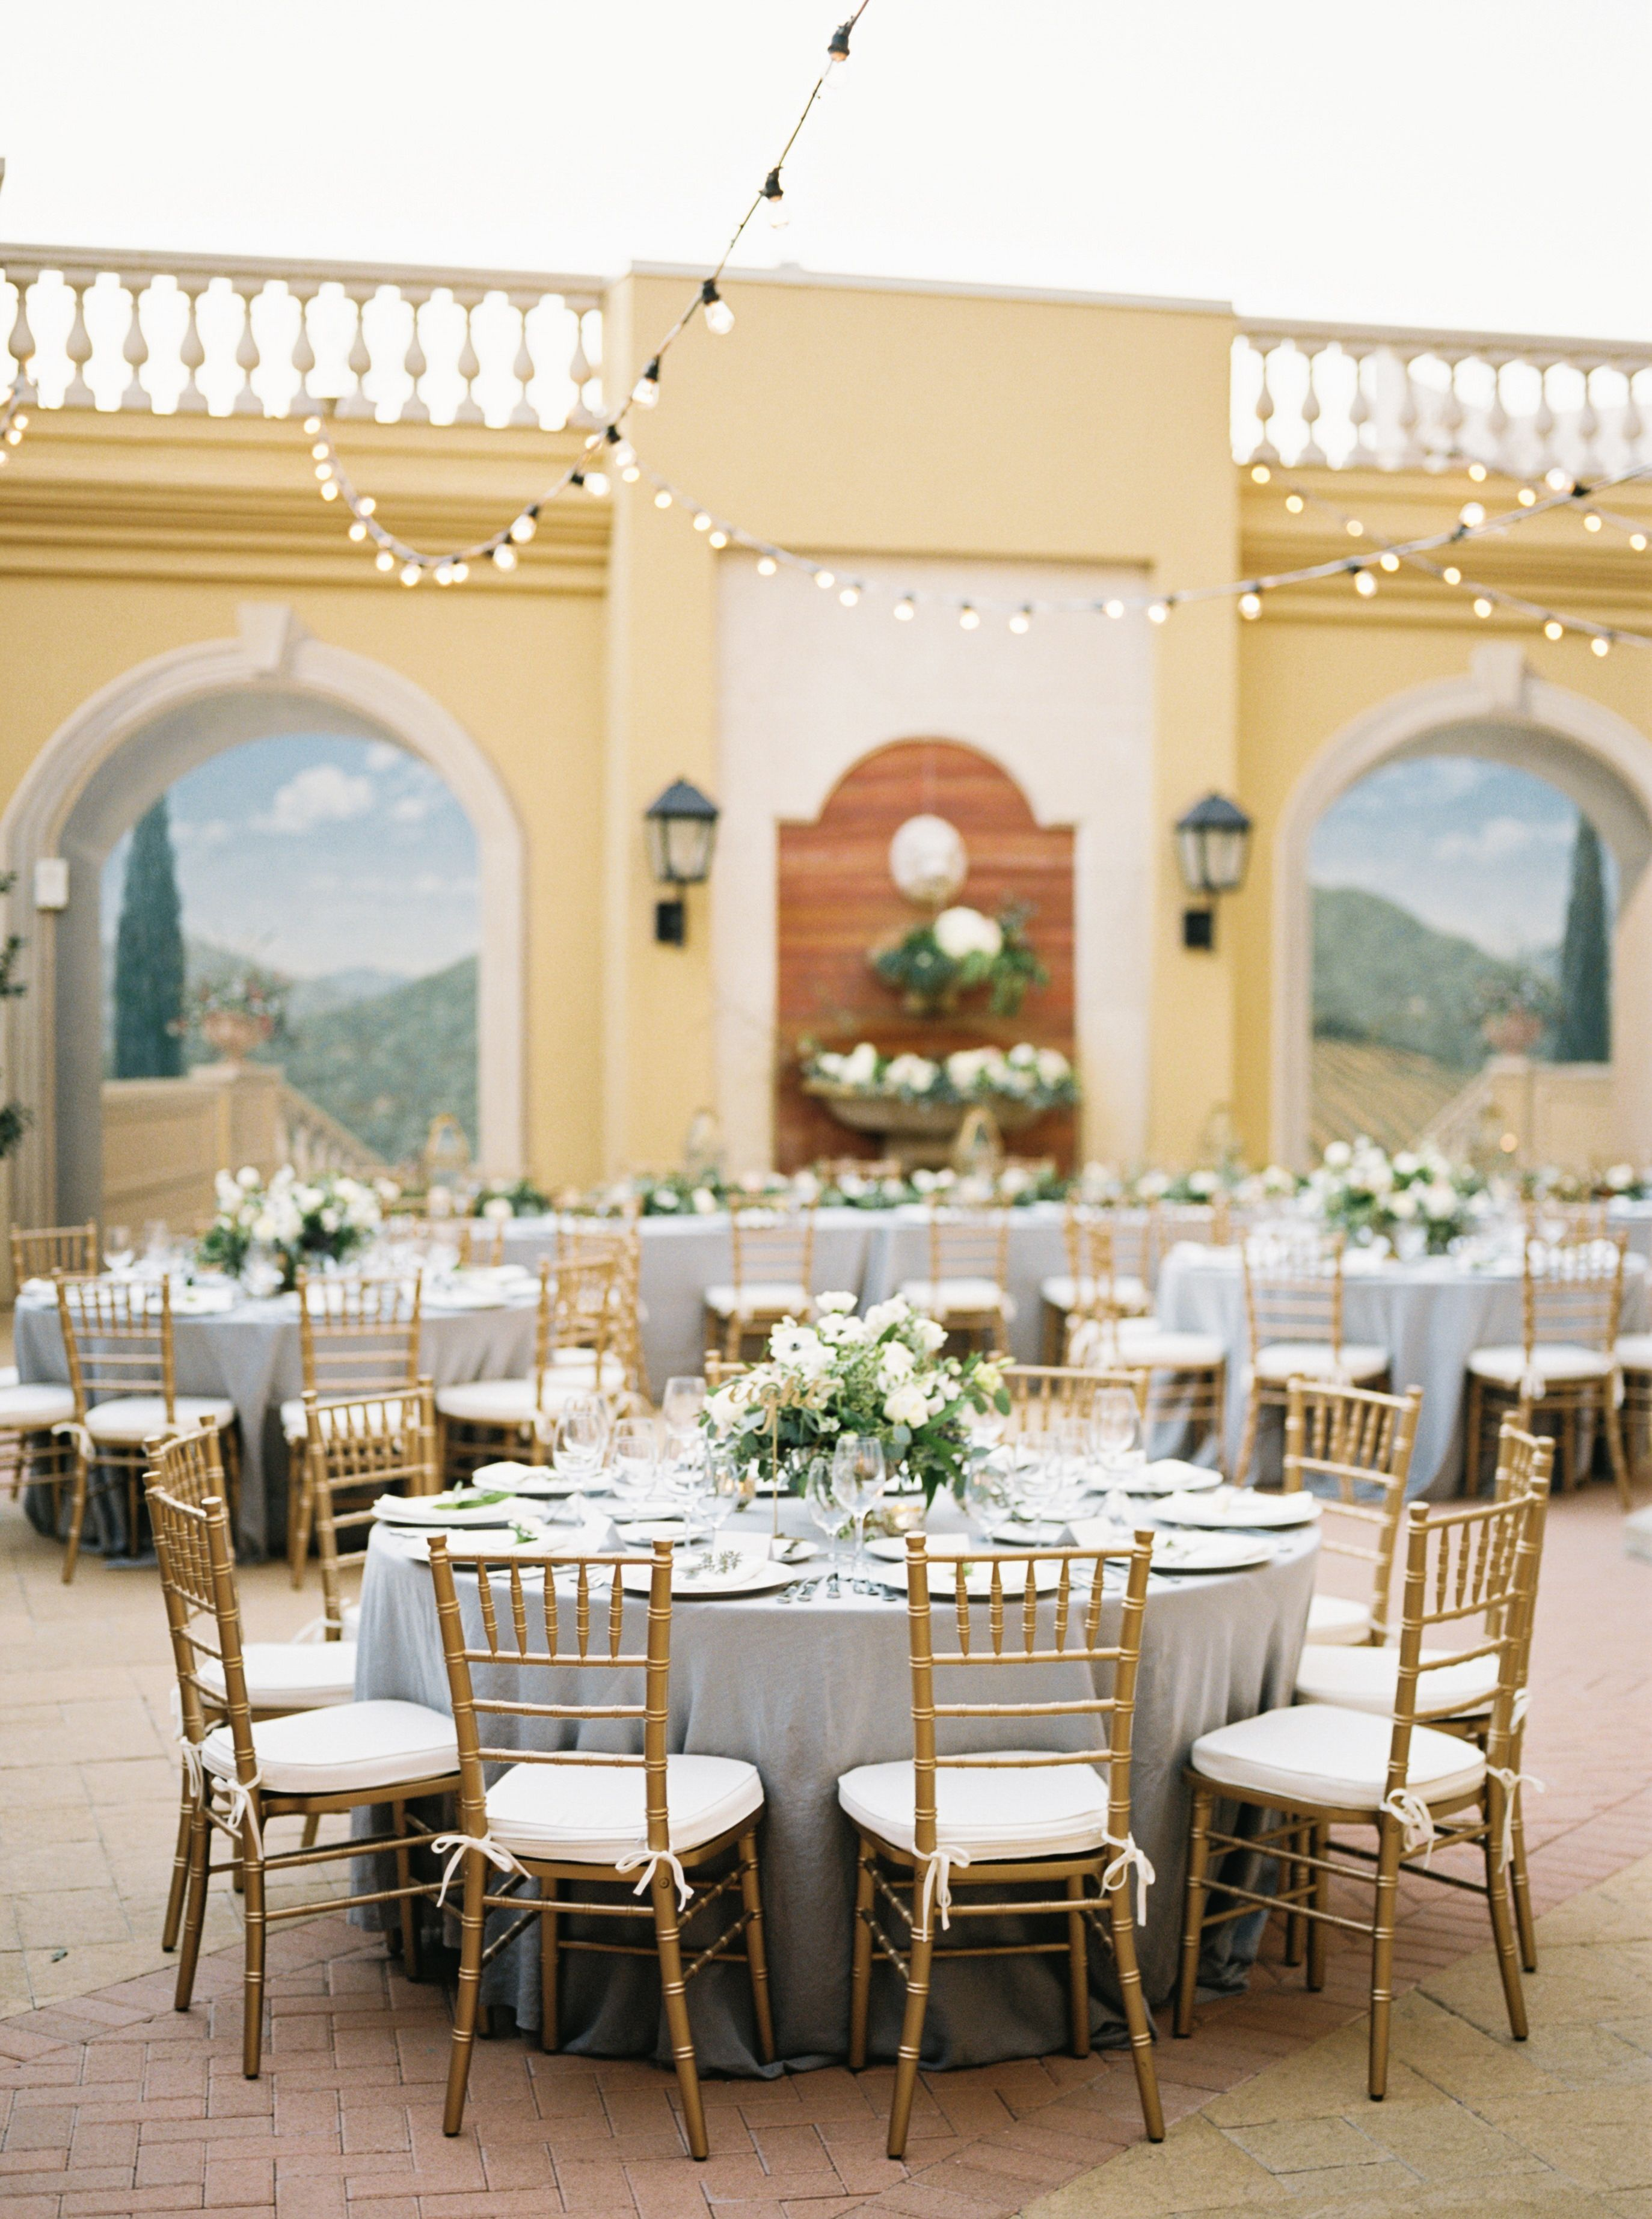 Light blue wedding decoration ideas  Bringing the Beauty of Tuscany to this Hill Country Wedding